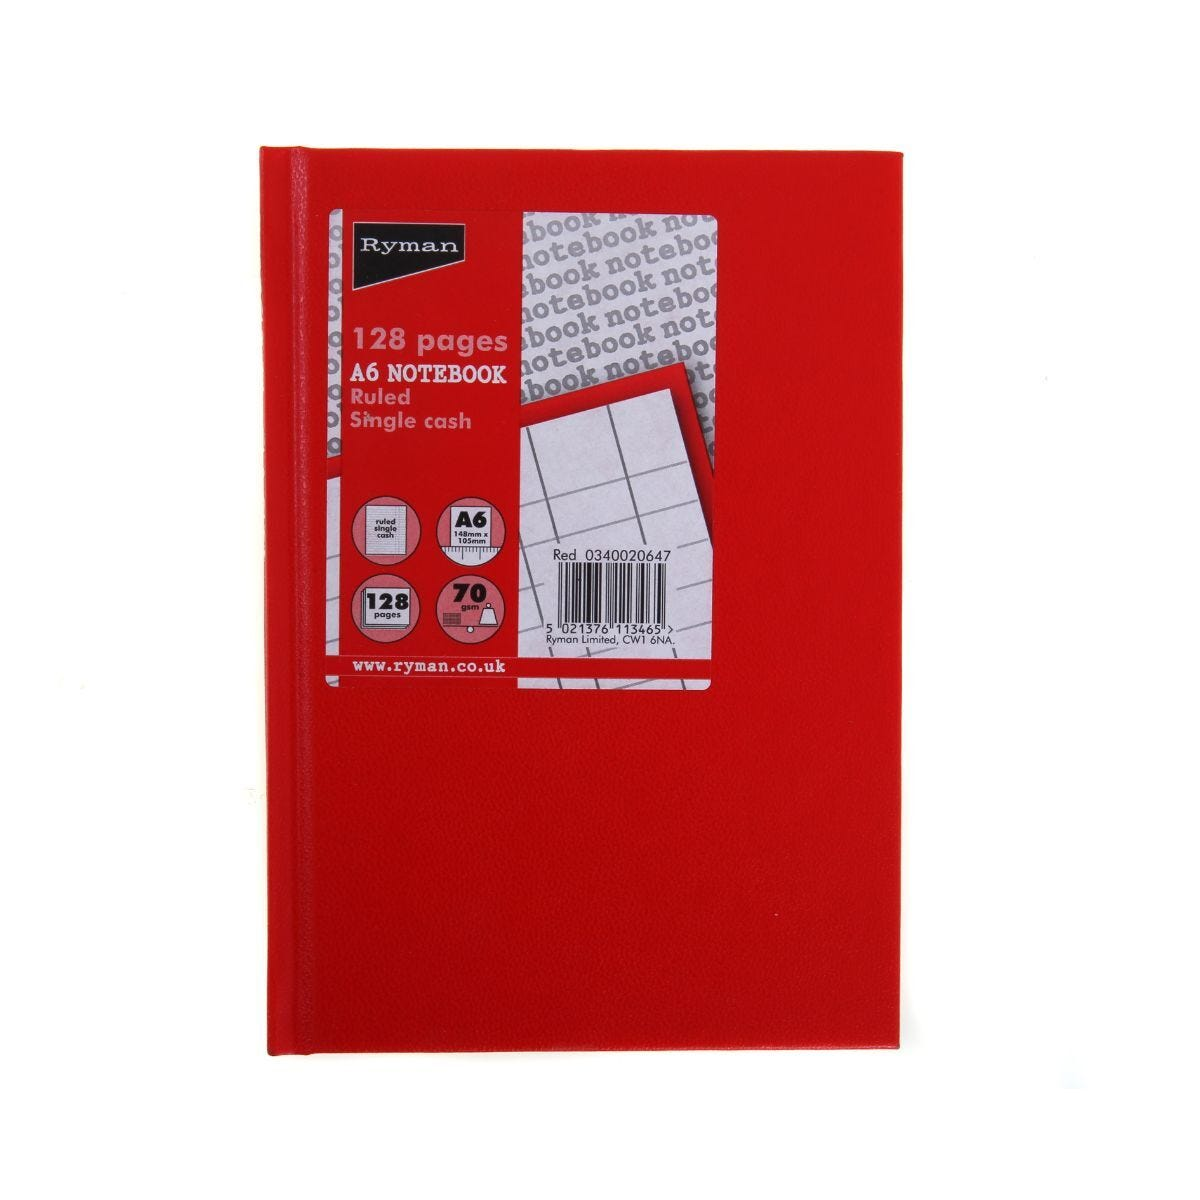 Ryman Casebound Memo Book Single Cash A6 128 Pages 70gsm